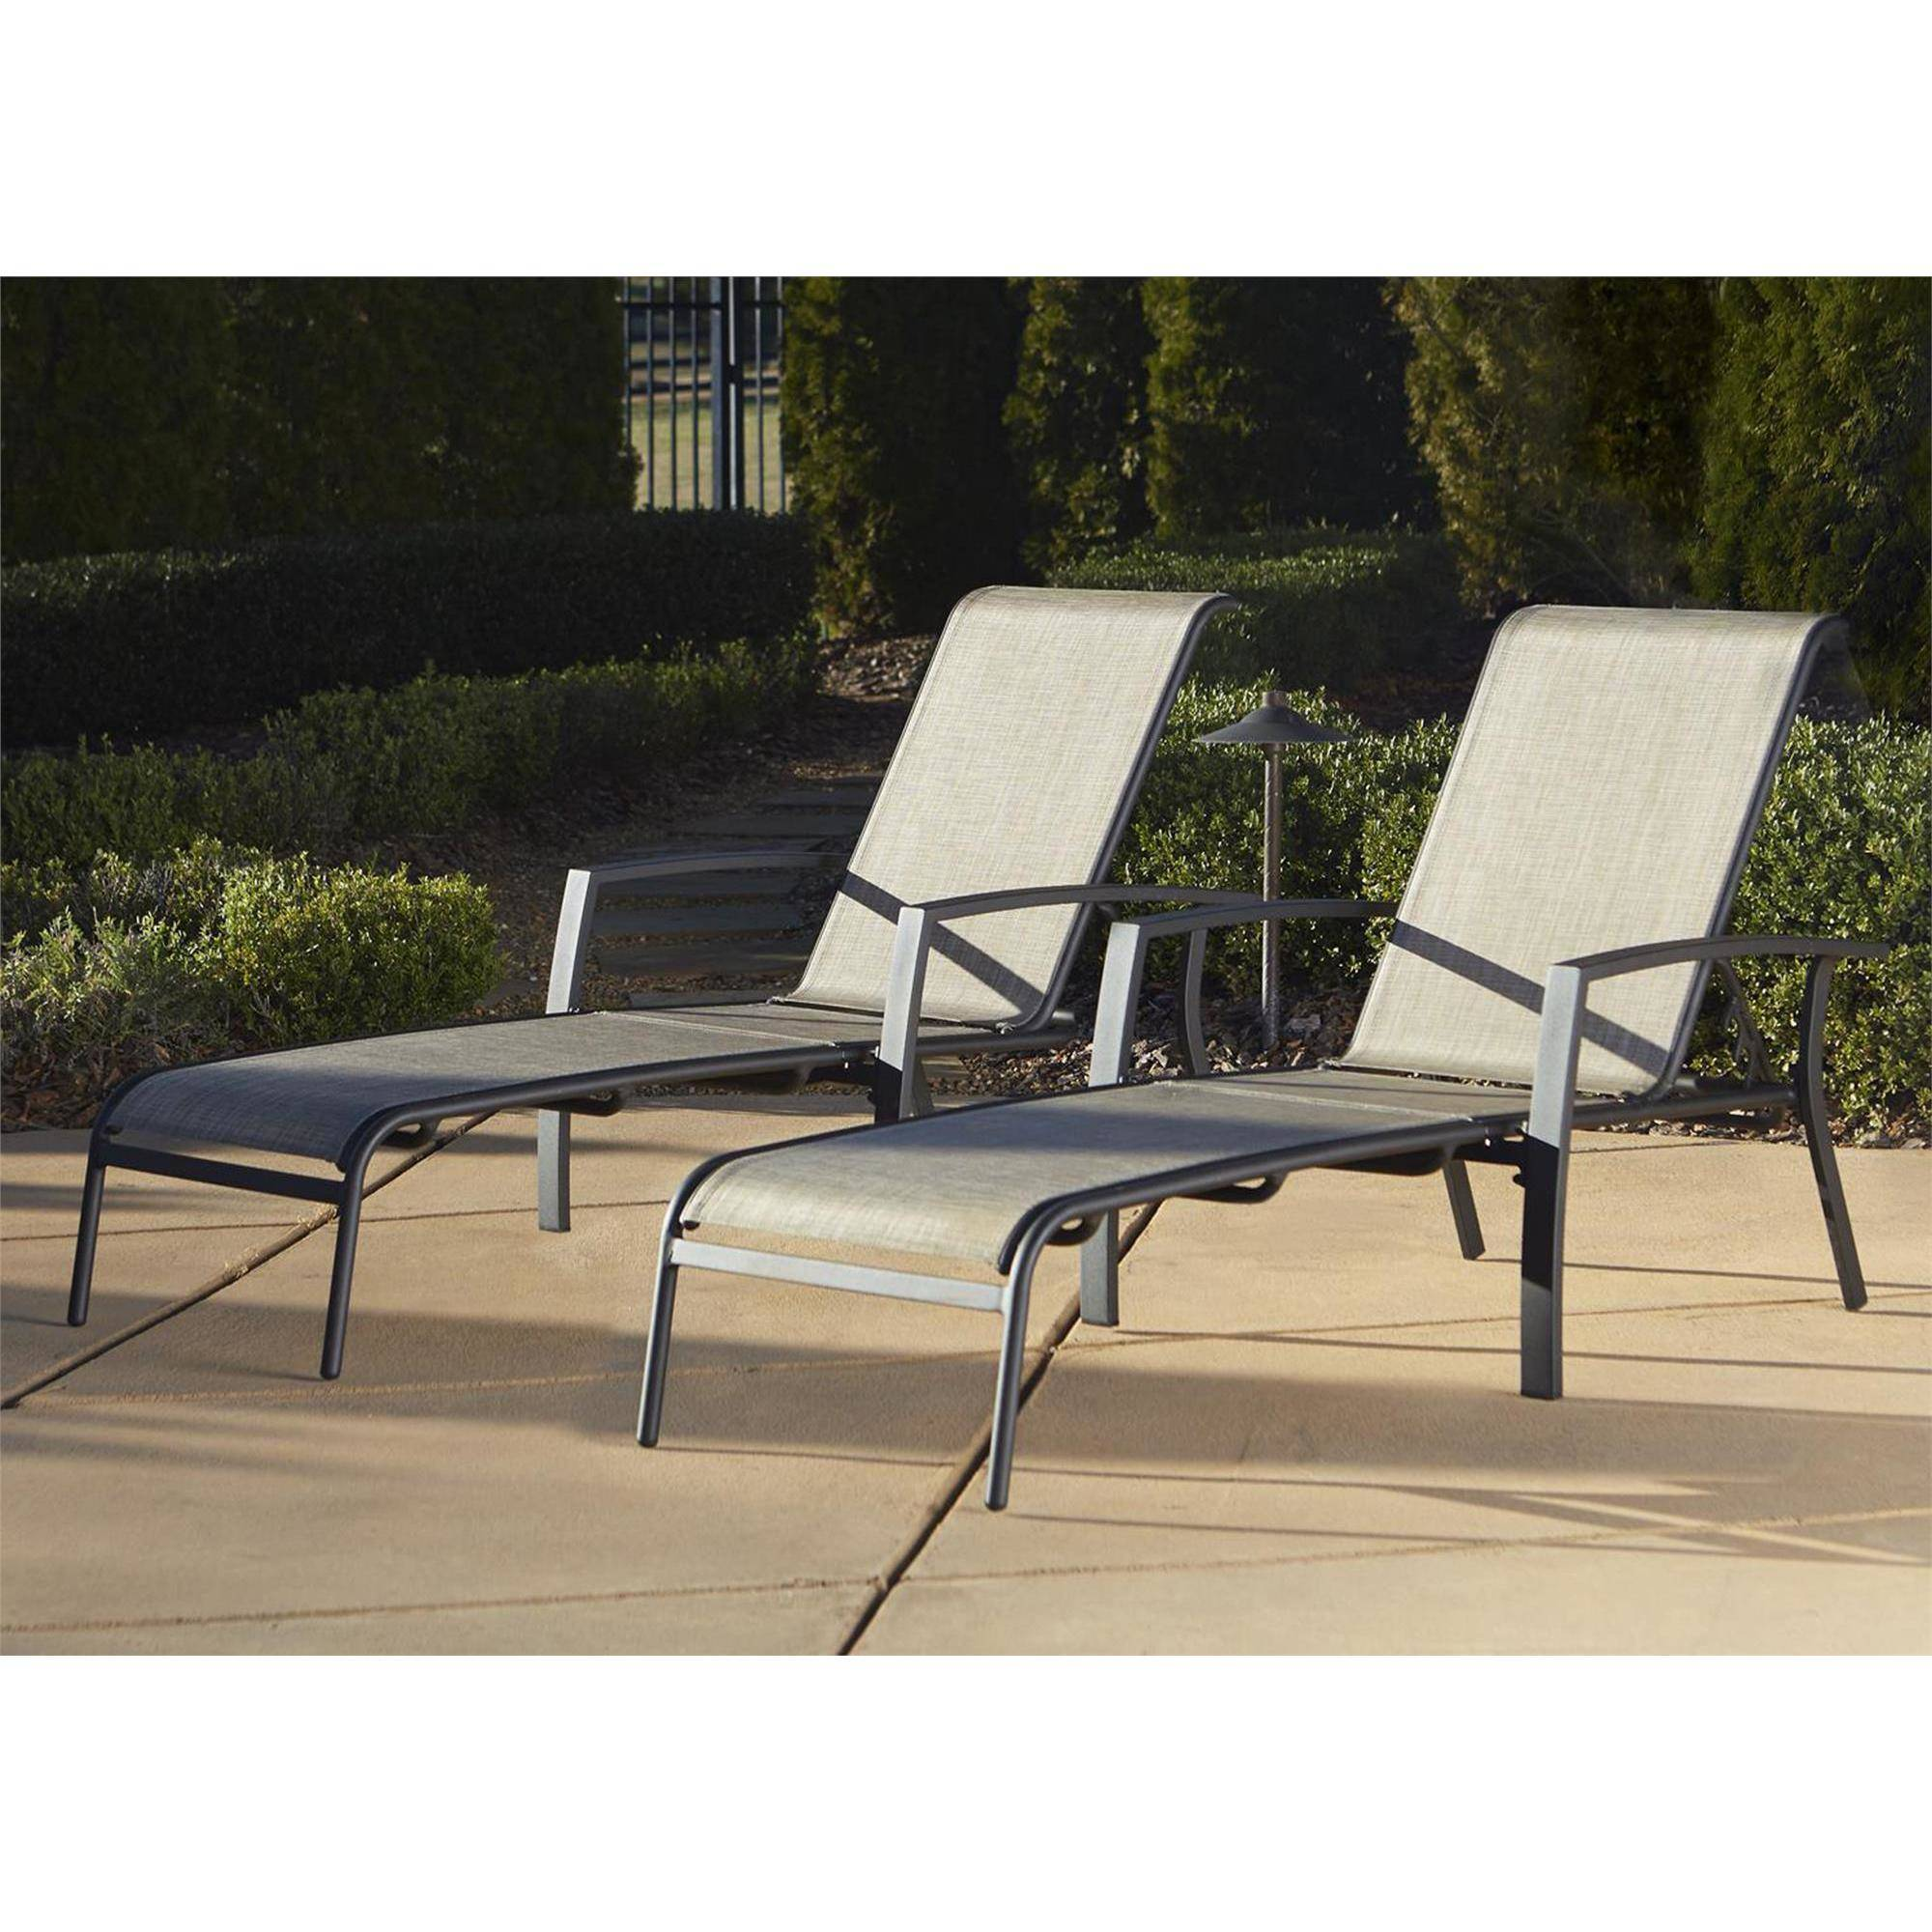 Chaise Lounge Chair Outdoor Venice Patio Furniture Outdoor Wicker